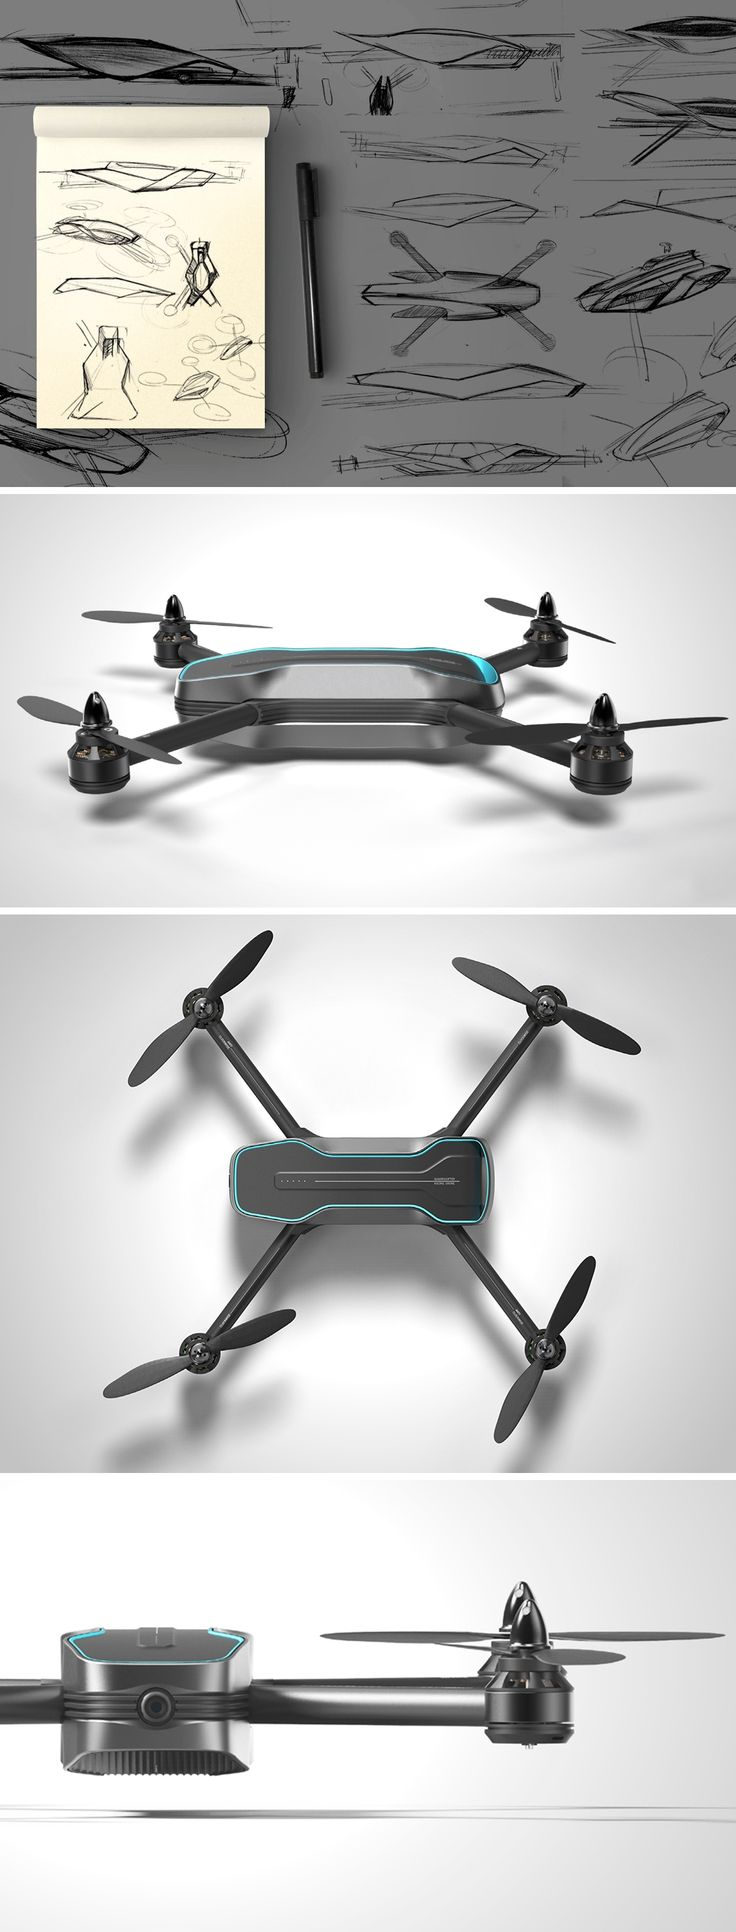 The airX drone combines the best of customizability and efficient construction t...